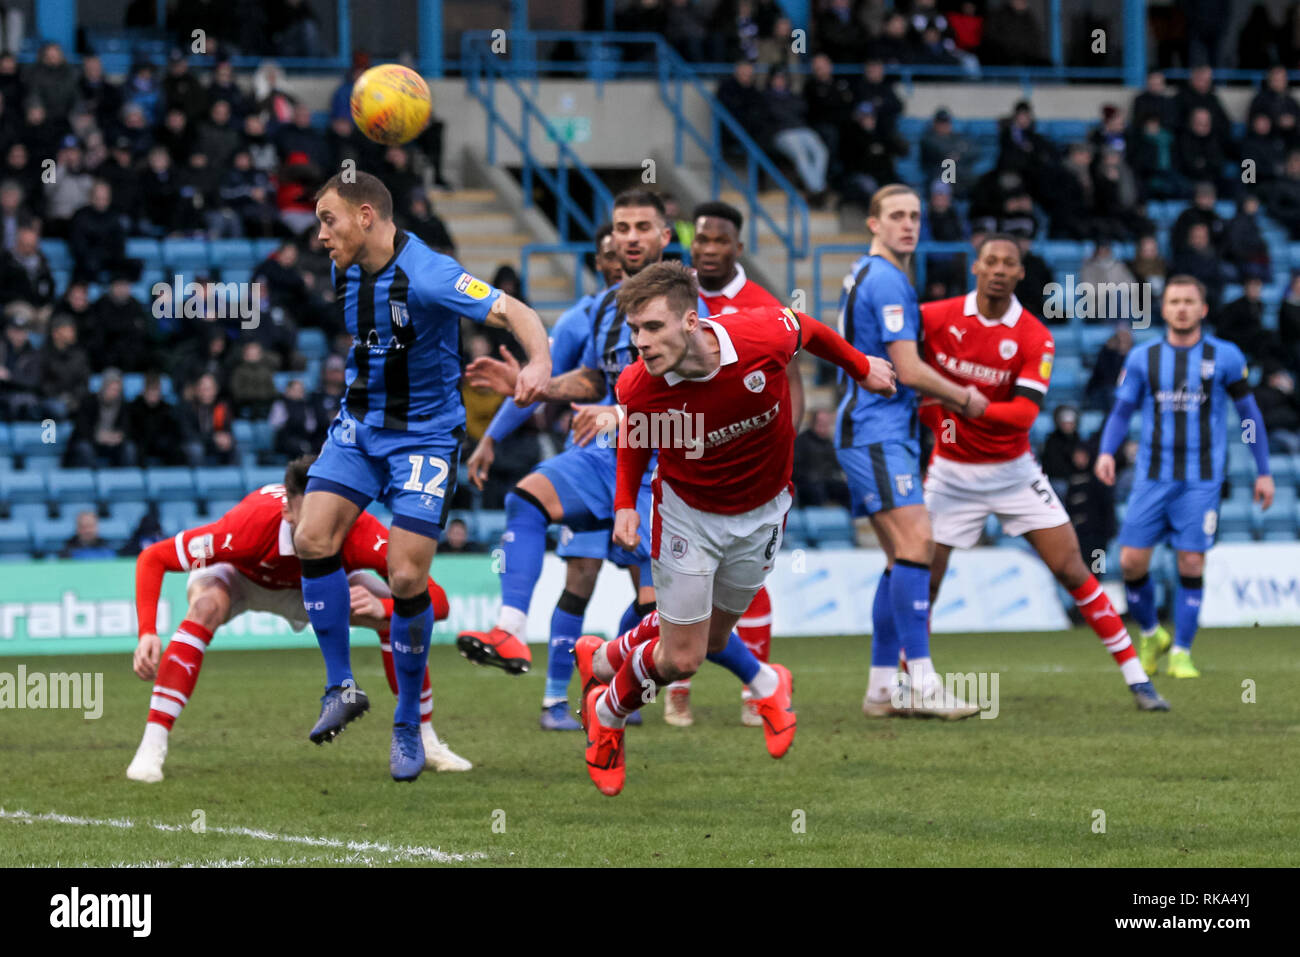 Gillingham, UK. 9th Feb 2019. Liam Lindsay of Barnsley gets his head to a cross during the EFL Sky Bet League 1 match between Gillingham and Barnsley at the MEMS Priestfield Stadium, Gillingham, England on 9 February 2019. Photo by Ken Sparks.  Editorial use only, license required for commercial use. No use in betting, games or a single club/league/player publications. Credit: UK Sports Pics Ltd/Alamy Live News - Stock Image